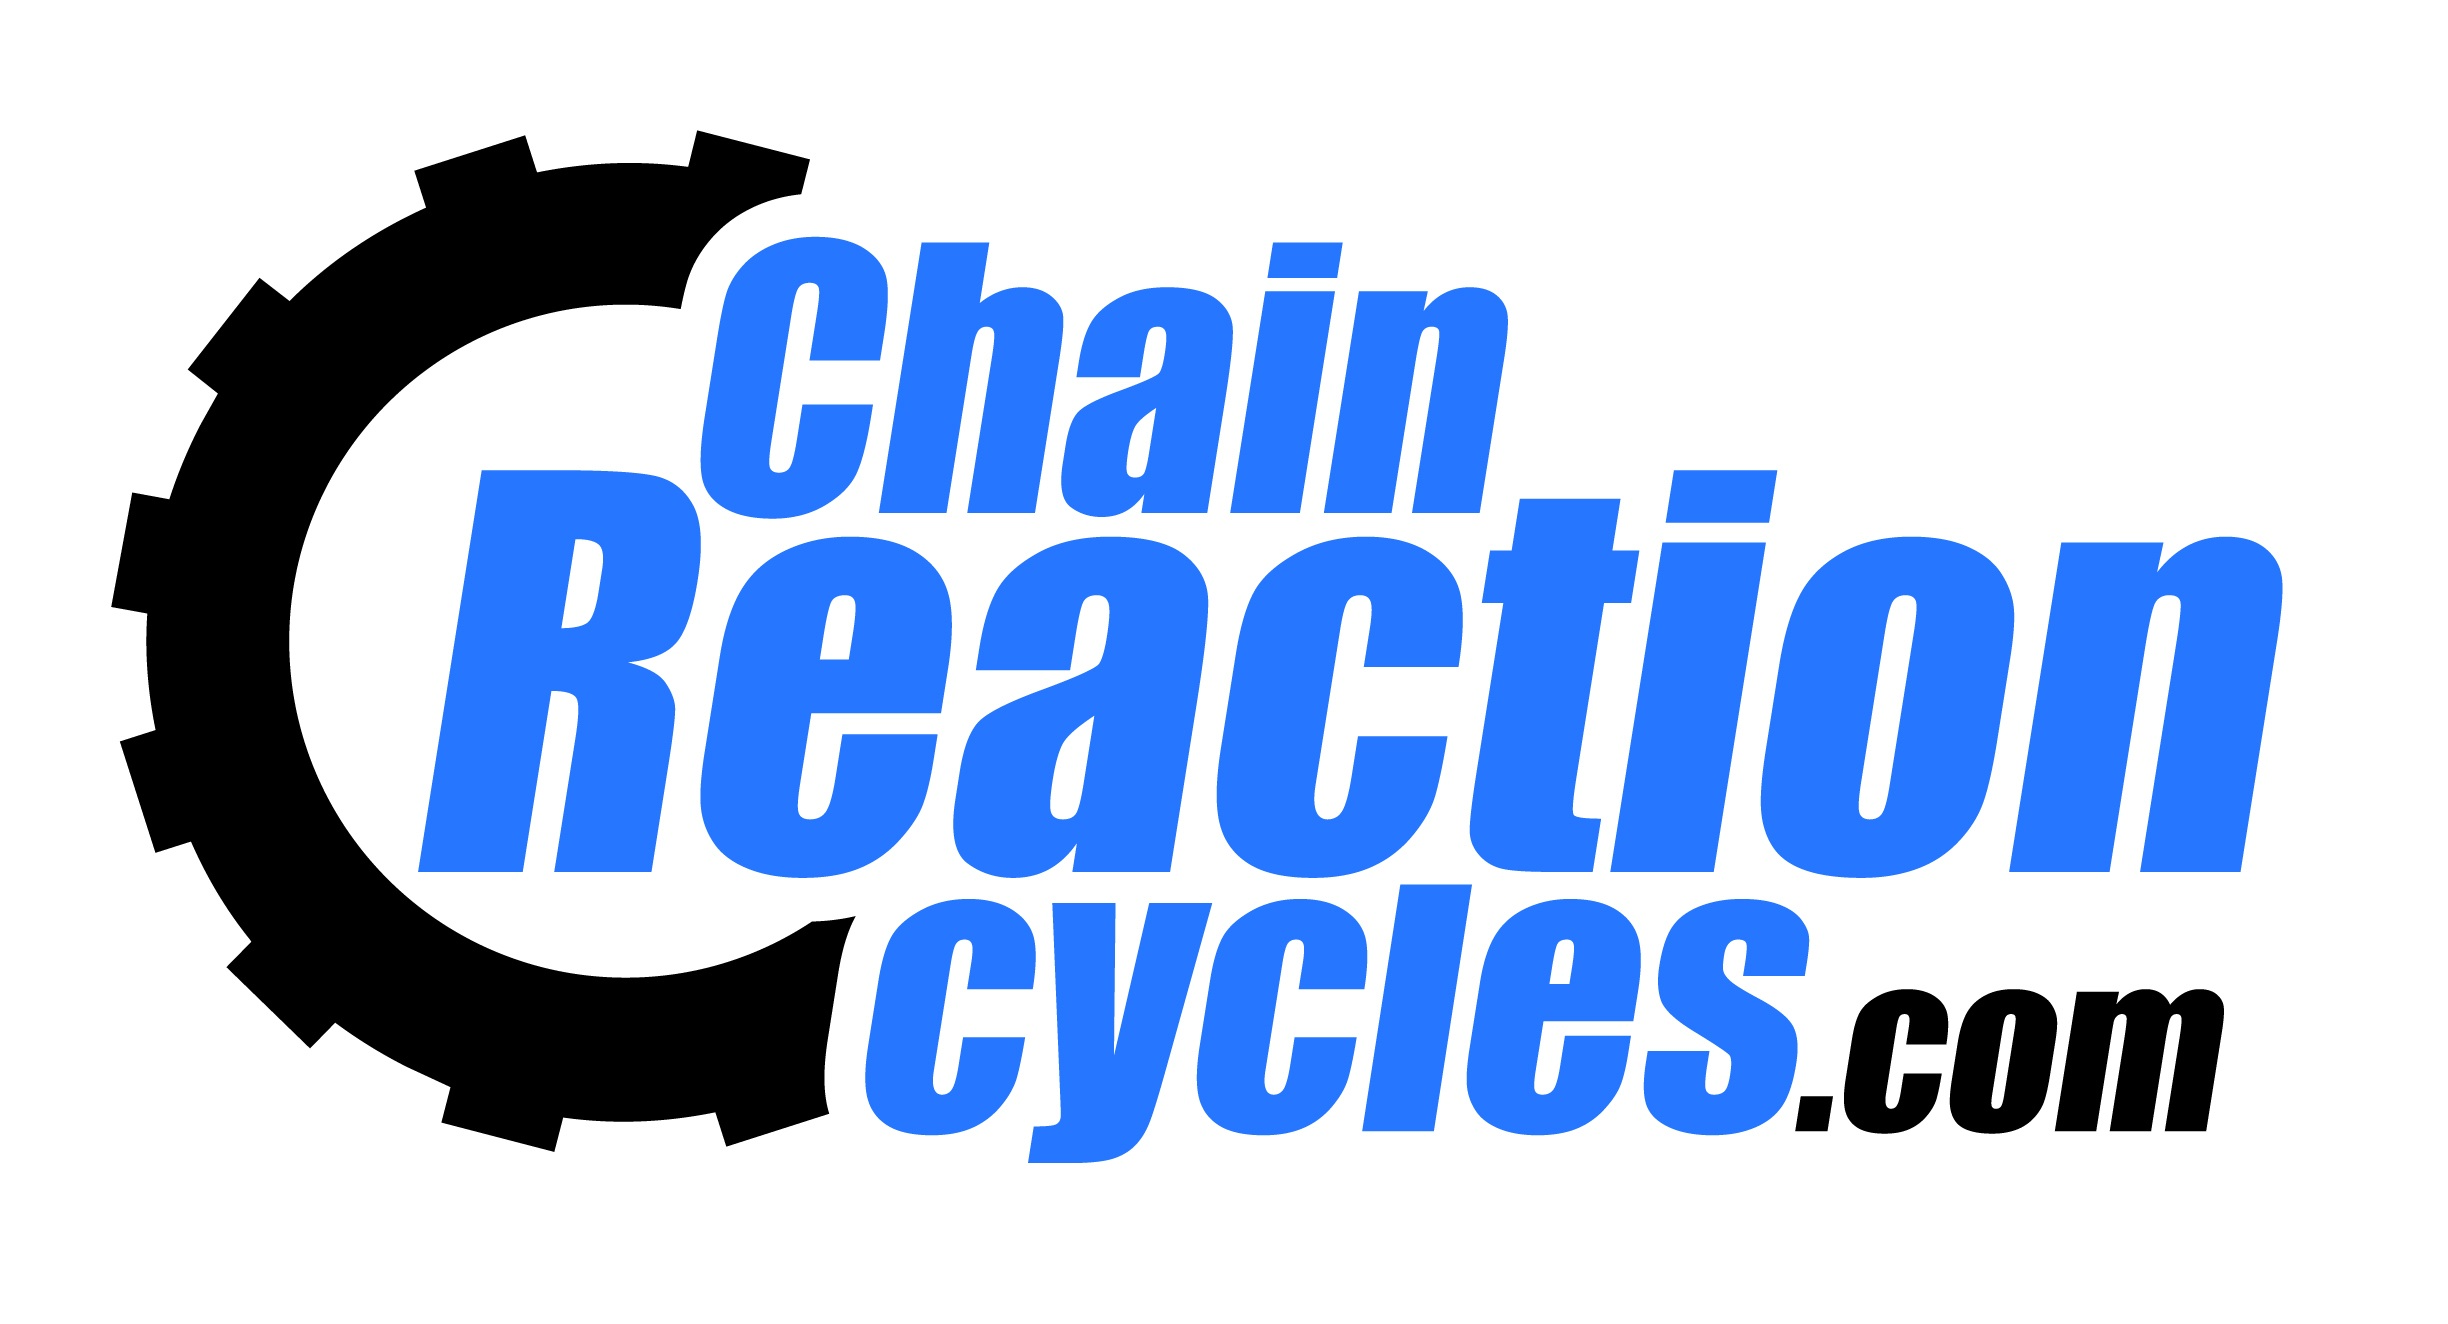 Chain Reaction Cycles is Alaska's premeire bike shop and the home of 9:ZERO:7 Bikes.